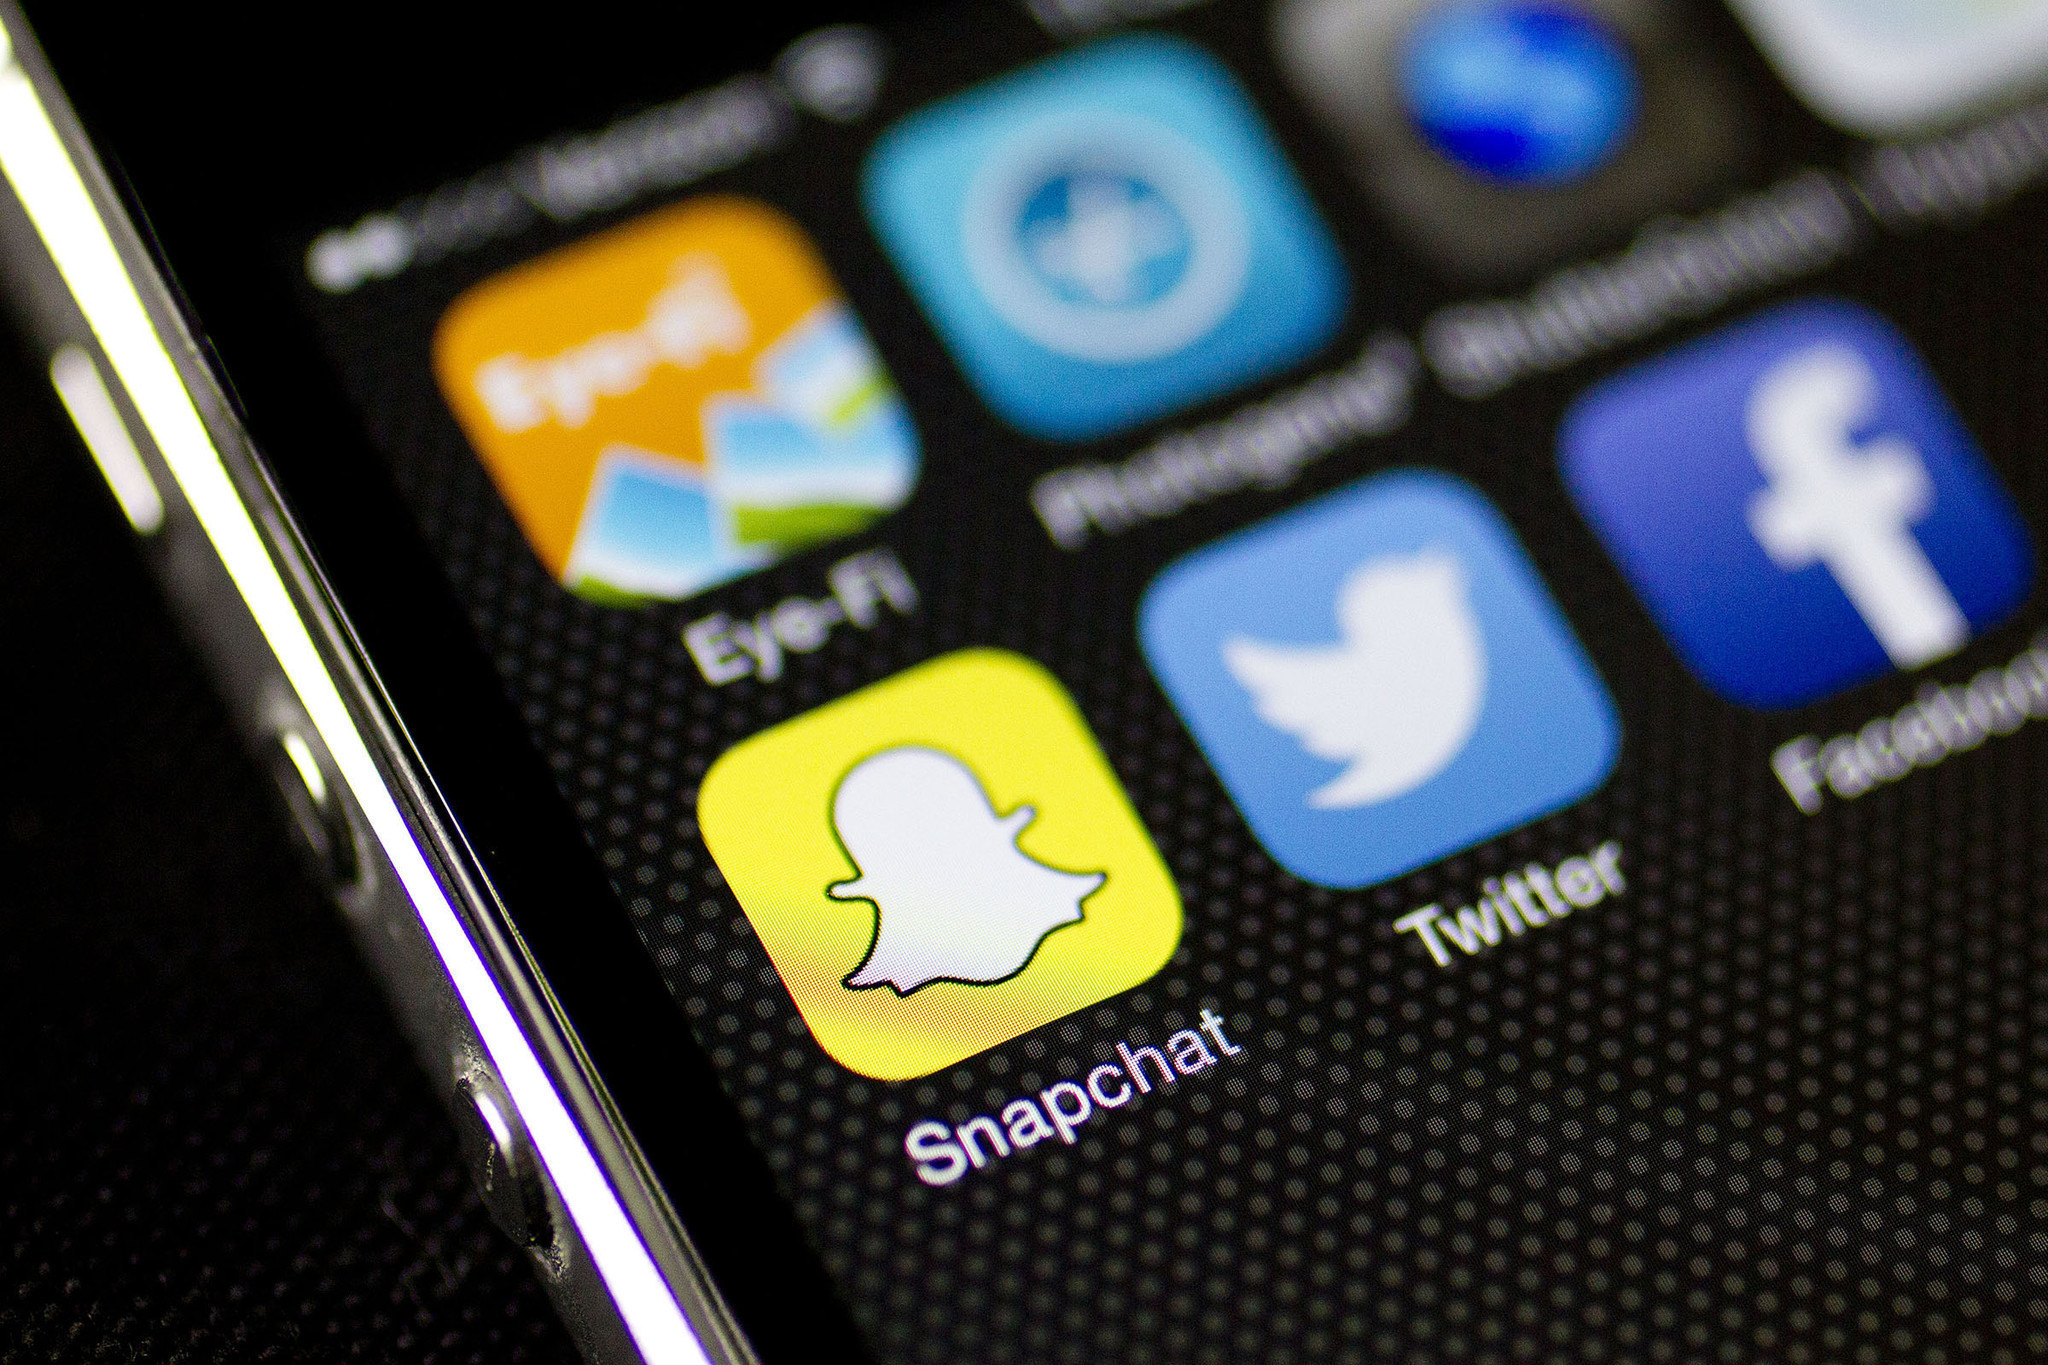 Using social media to disqualify job candidates is risky